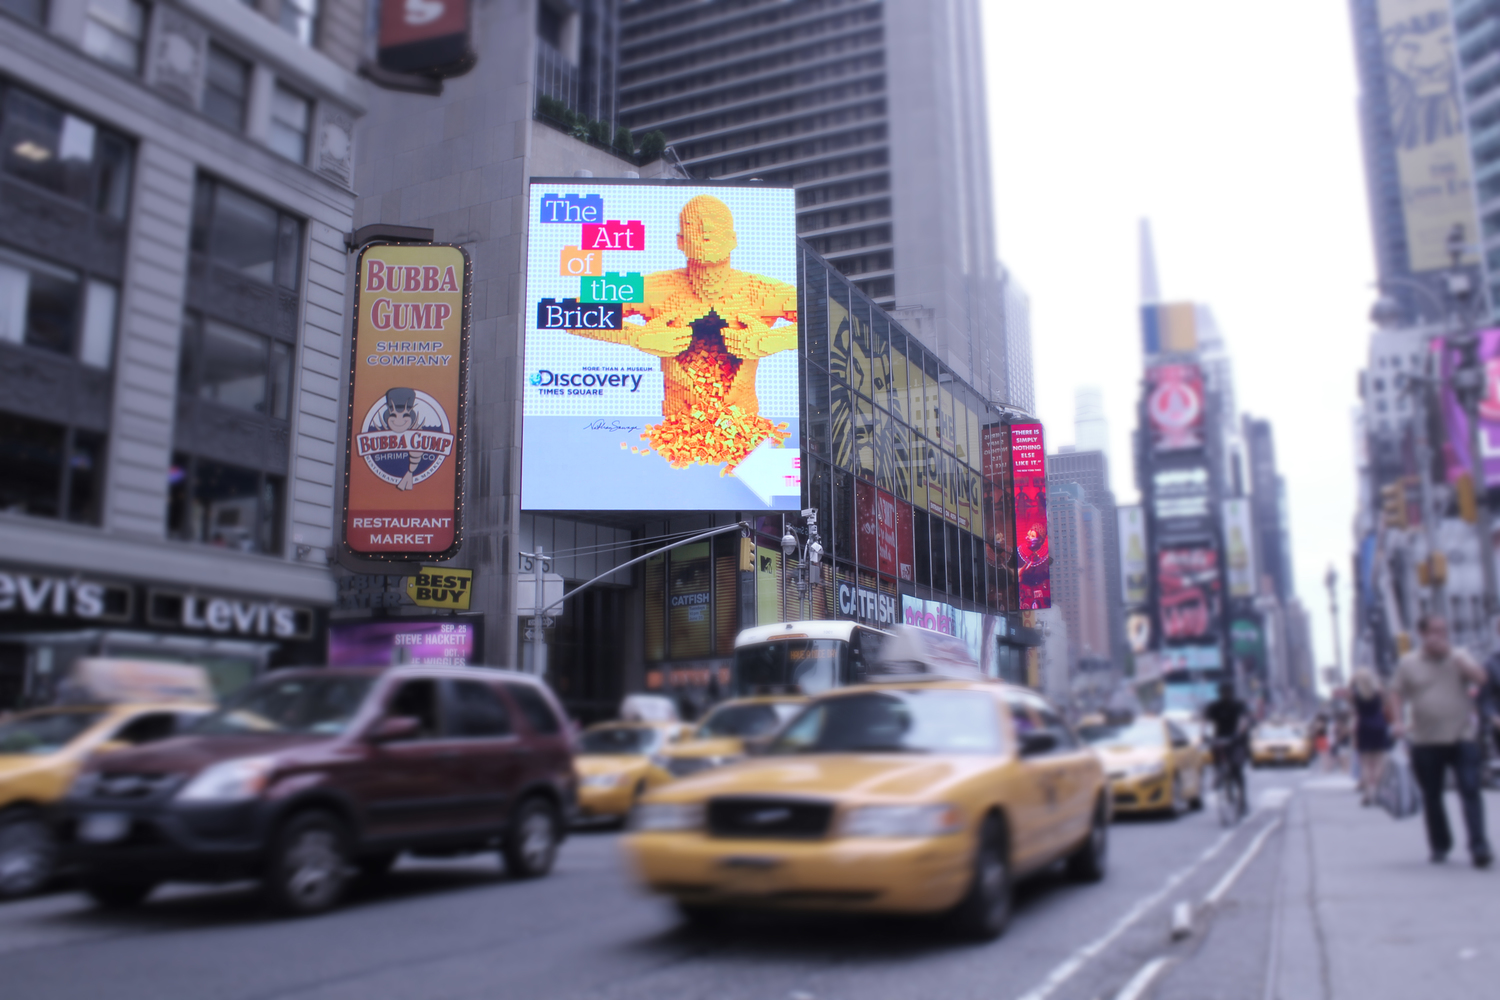 1515 BROADWAY, TIMES SQUARE, NEW YORK